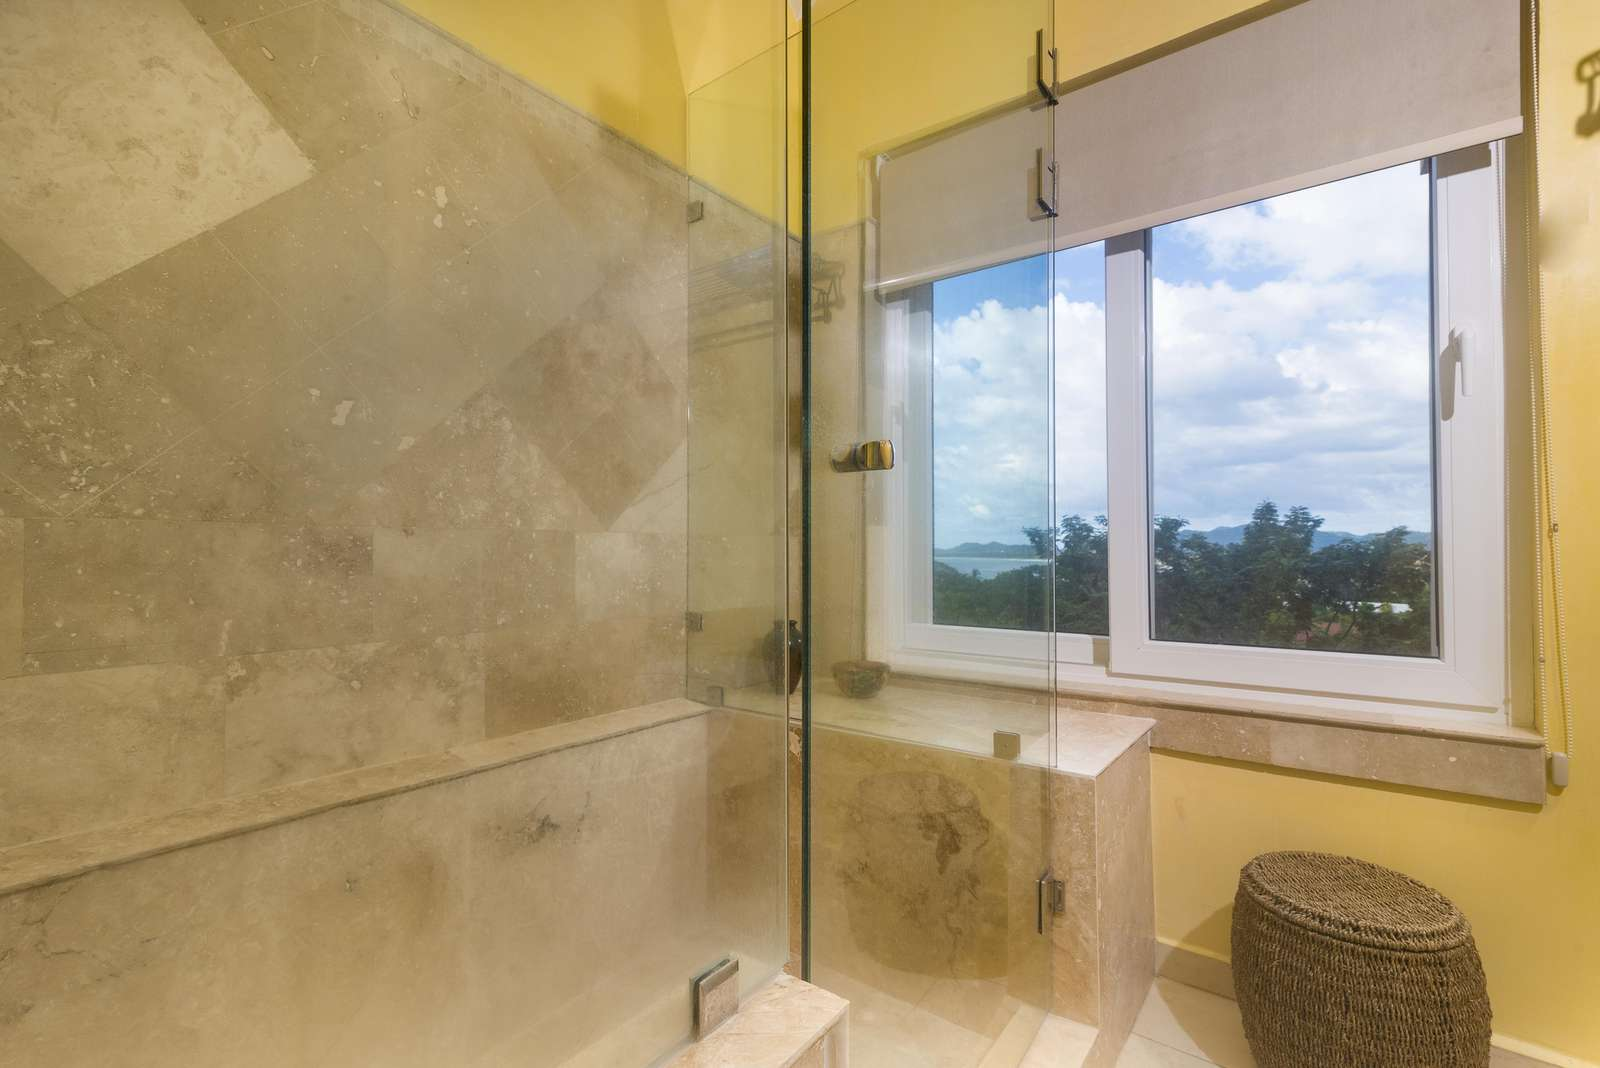 Ocean views from the master shower